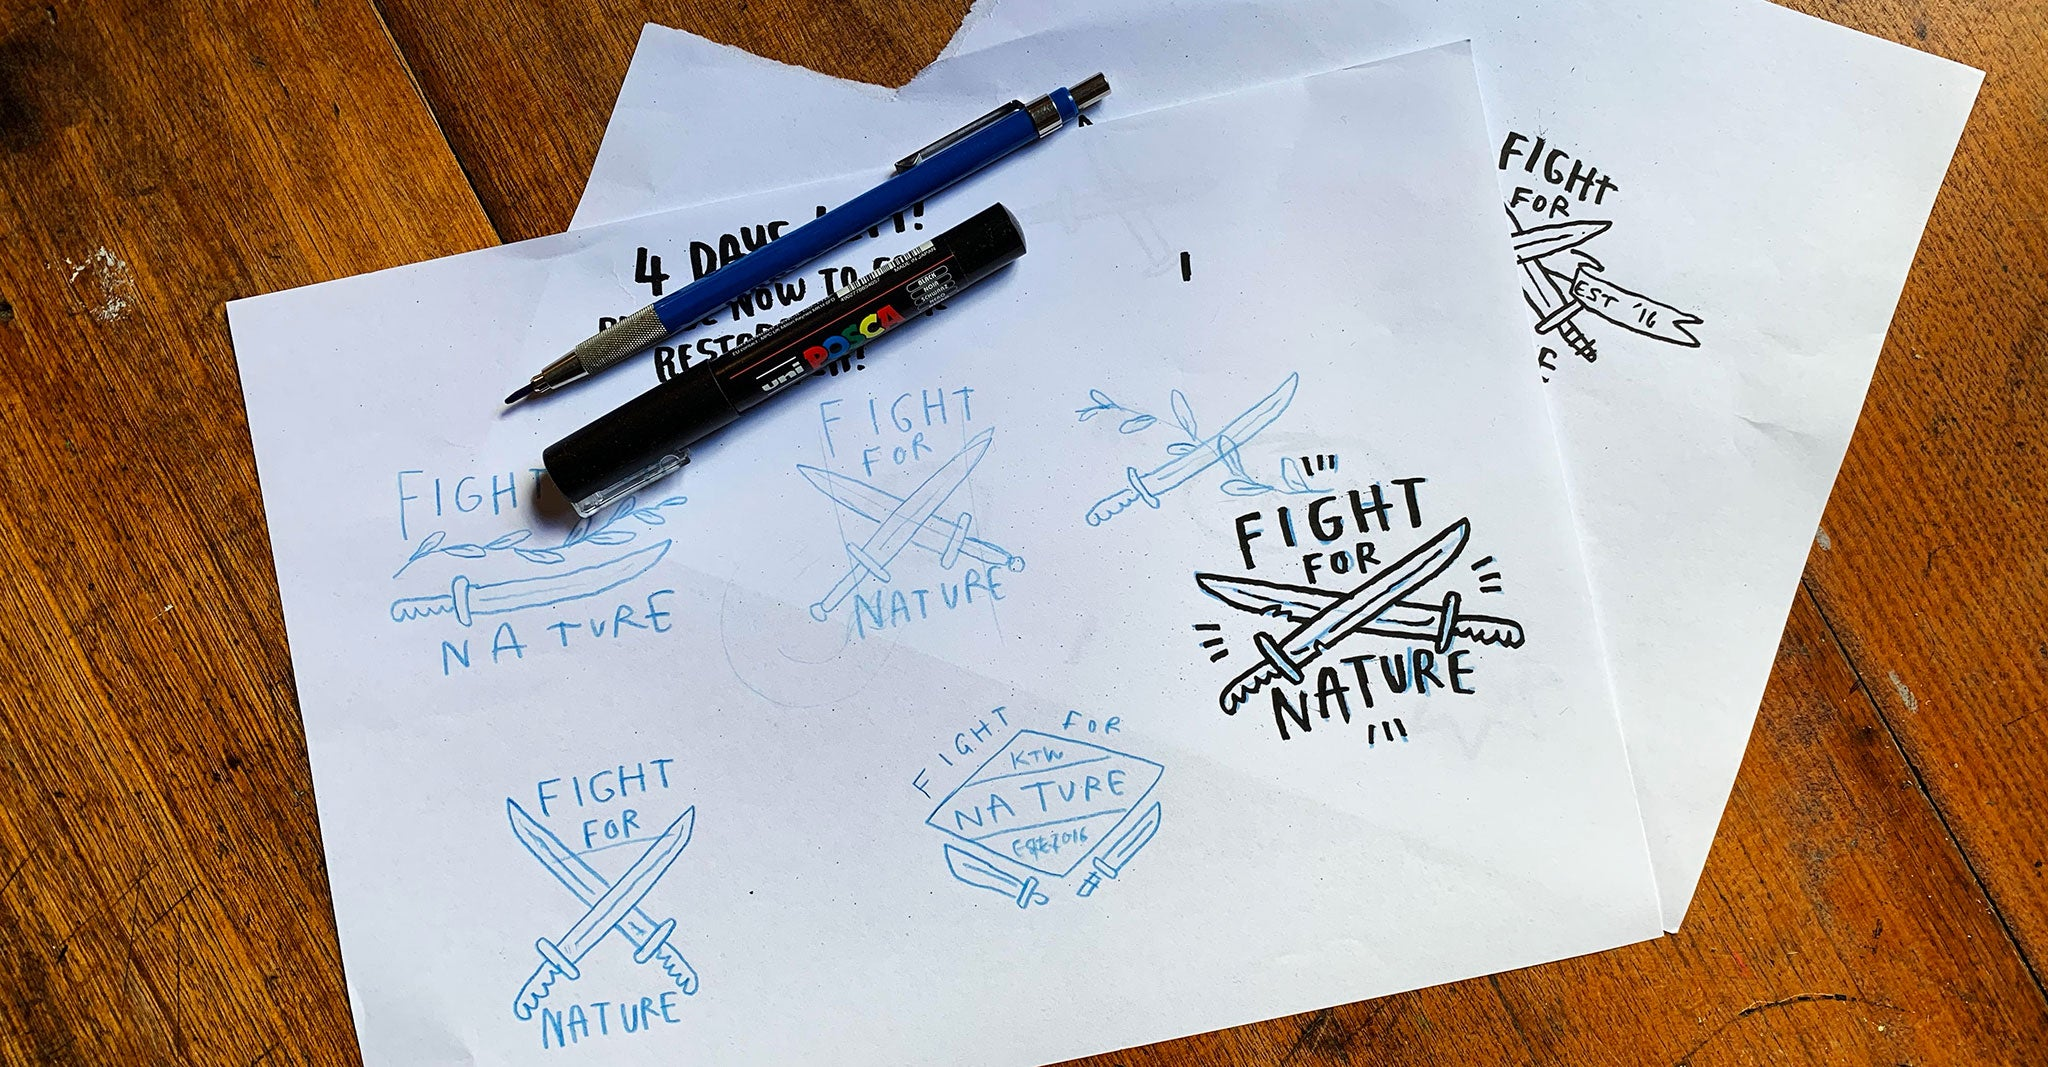 Original Fight for Nature design sketches